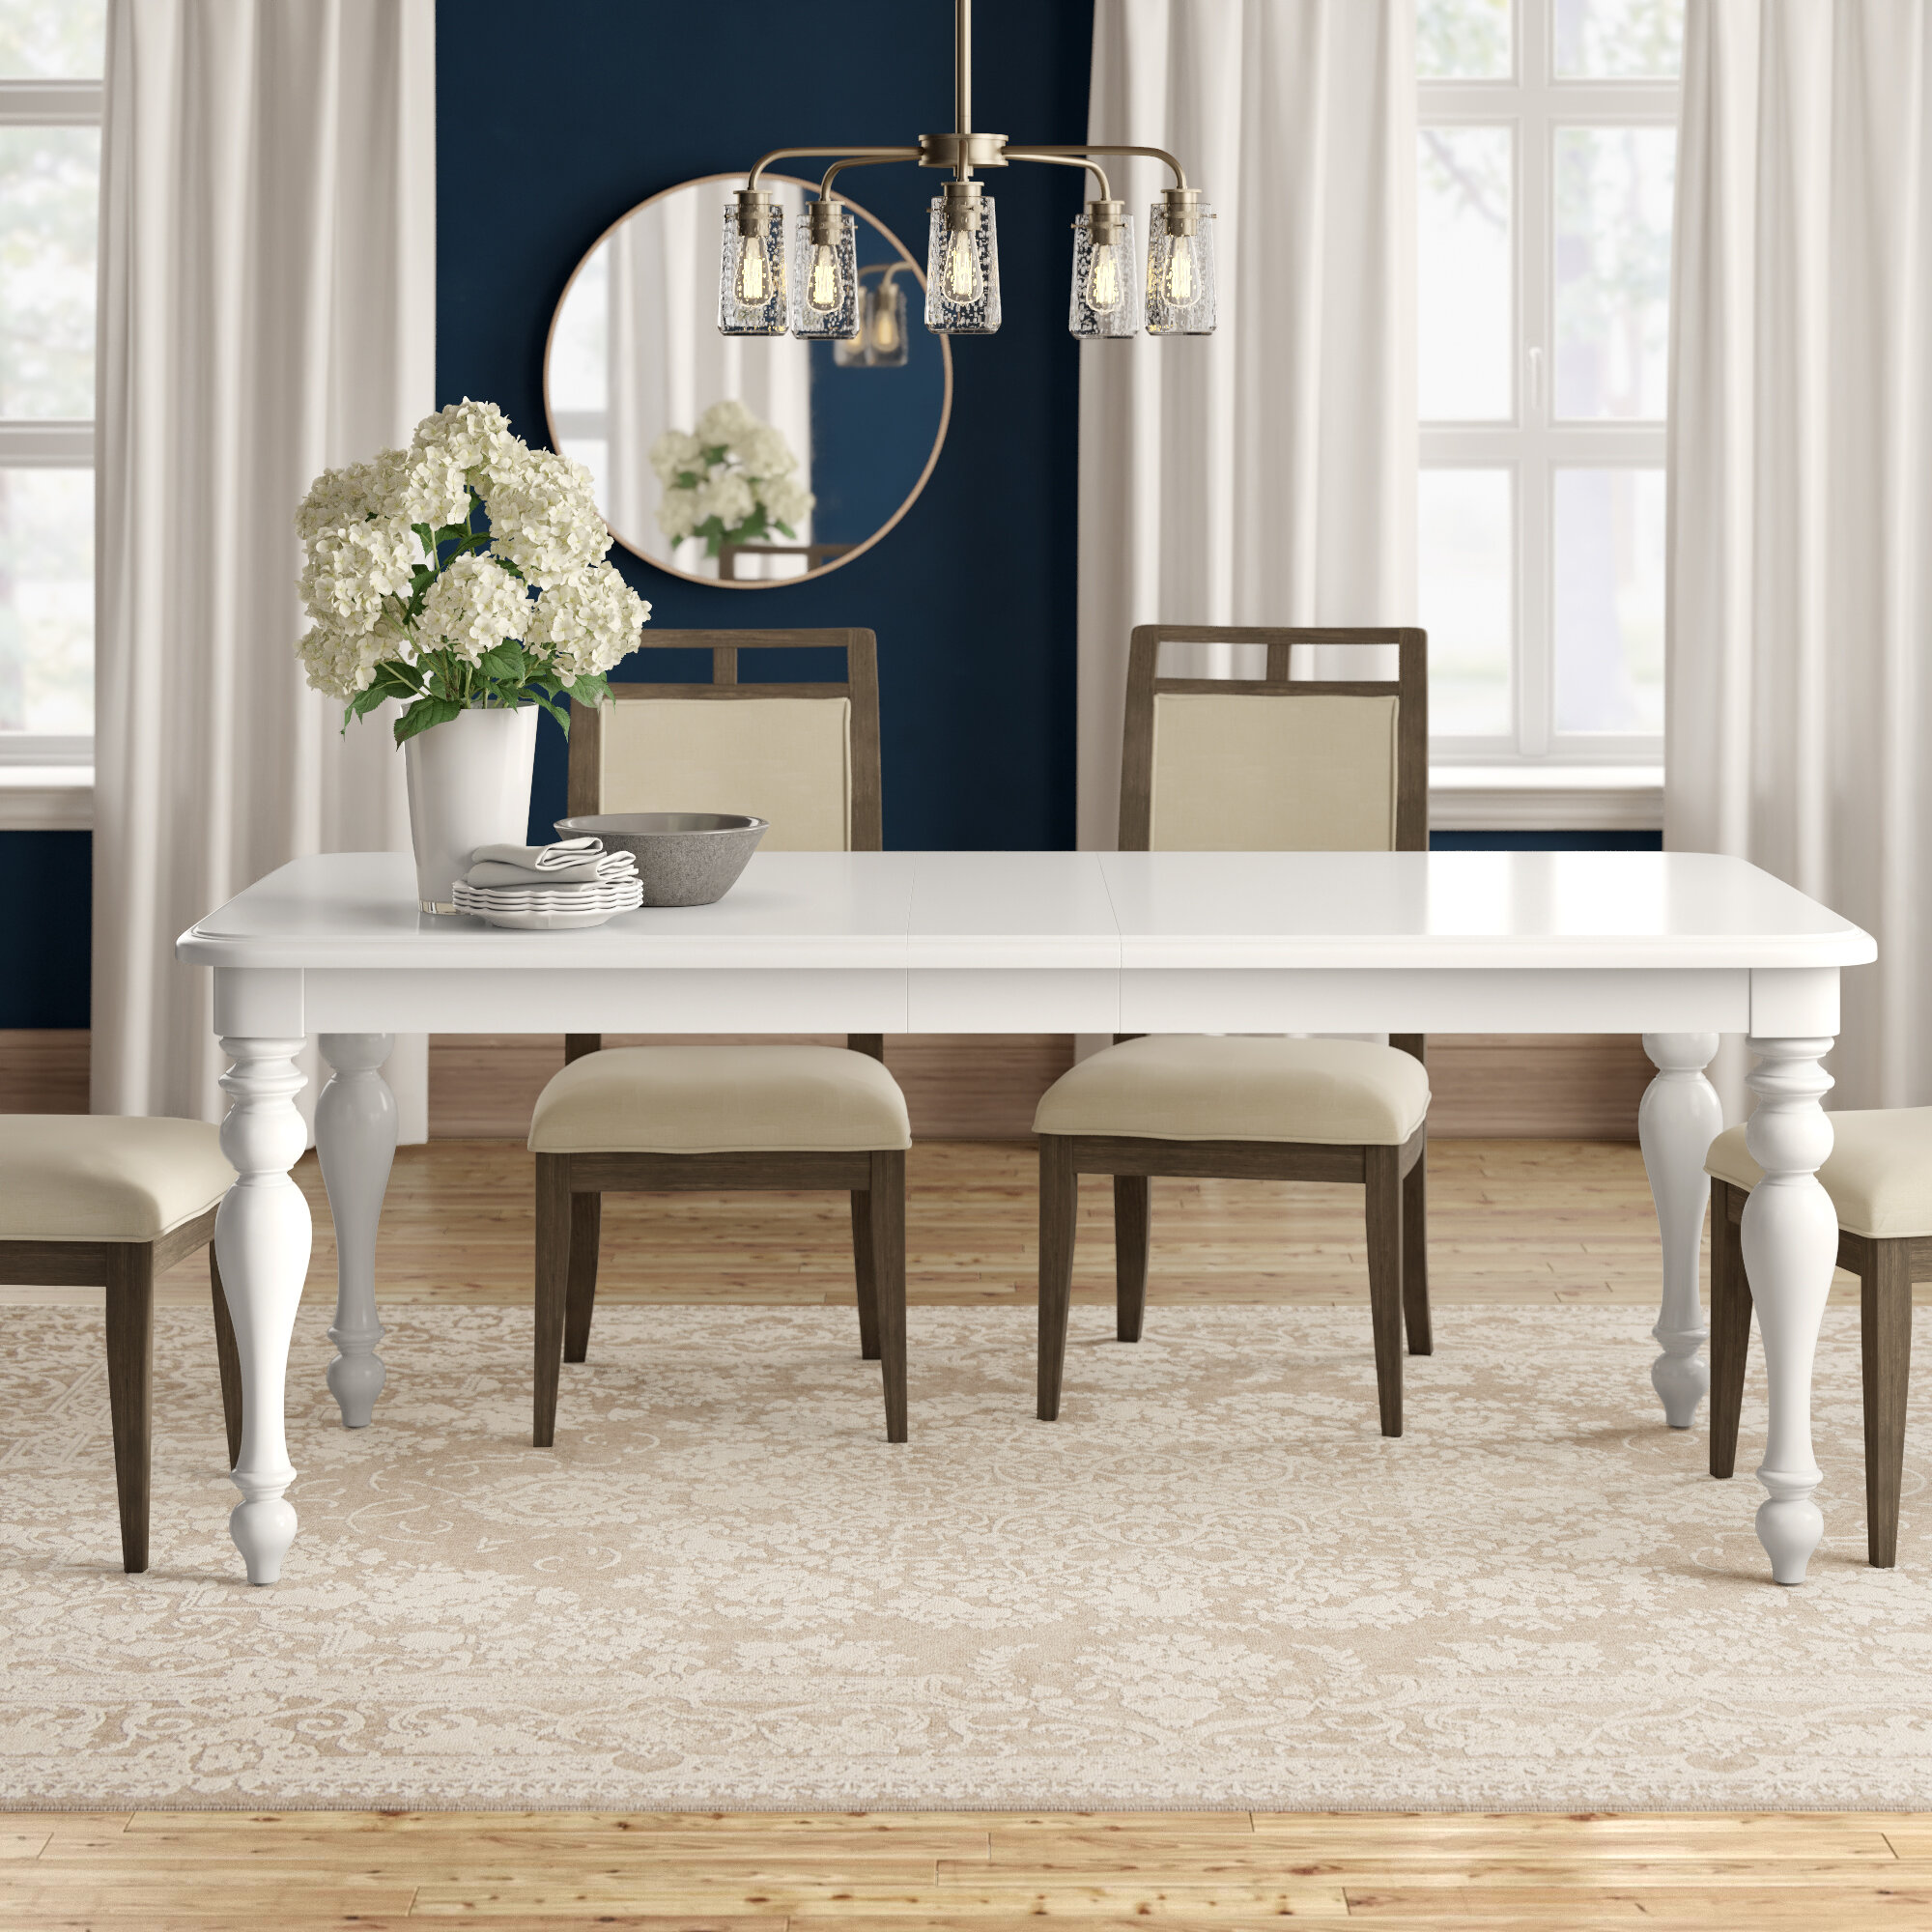 James Extendable Dining Table Reviews Birch Lane,Three Bedroom 3 Bedroom House Designs Pictures